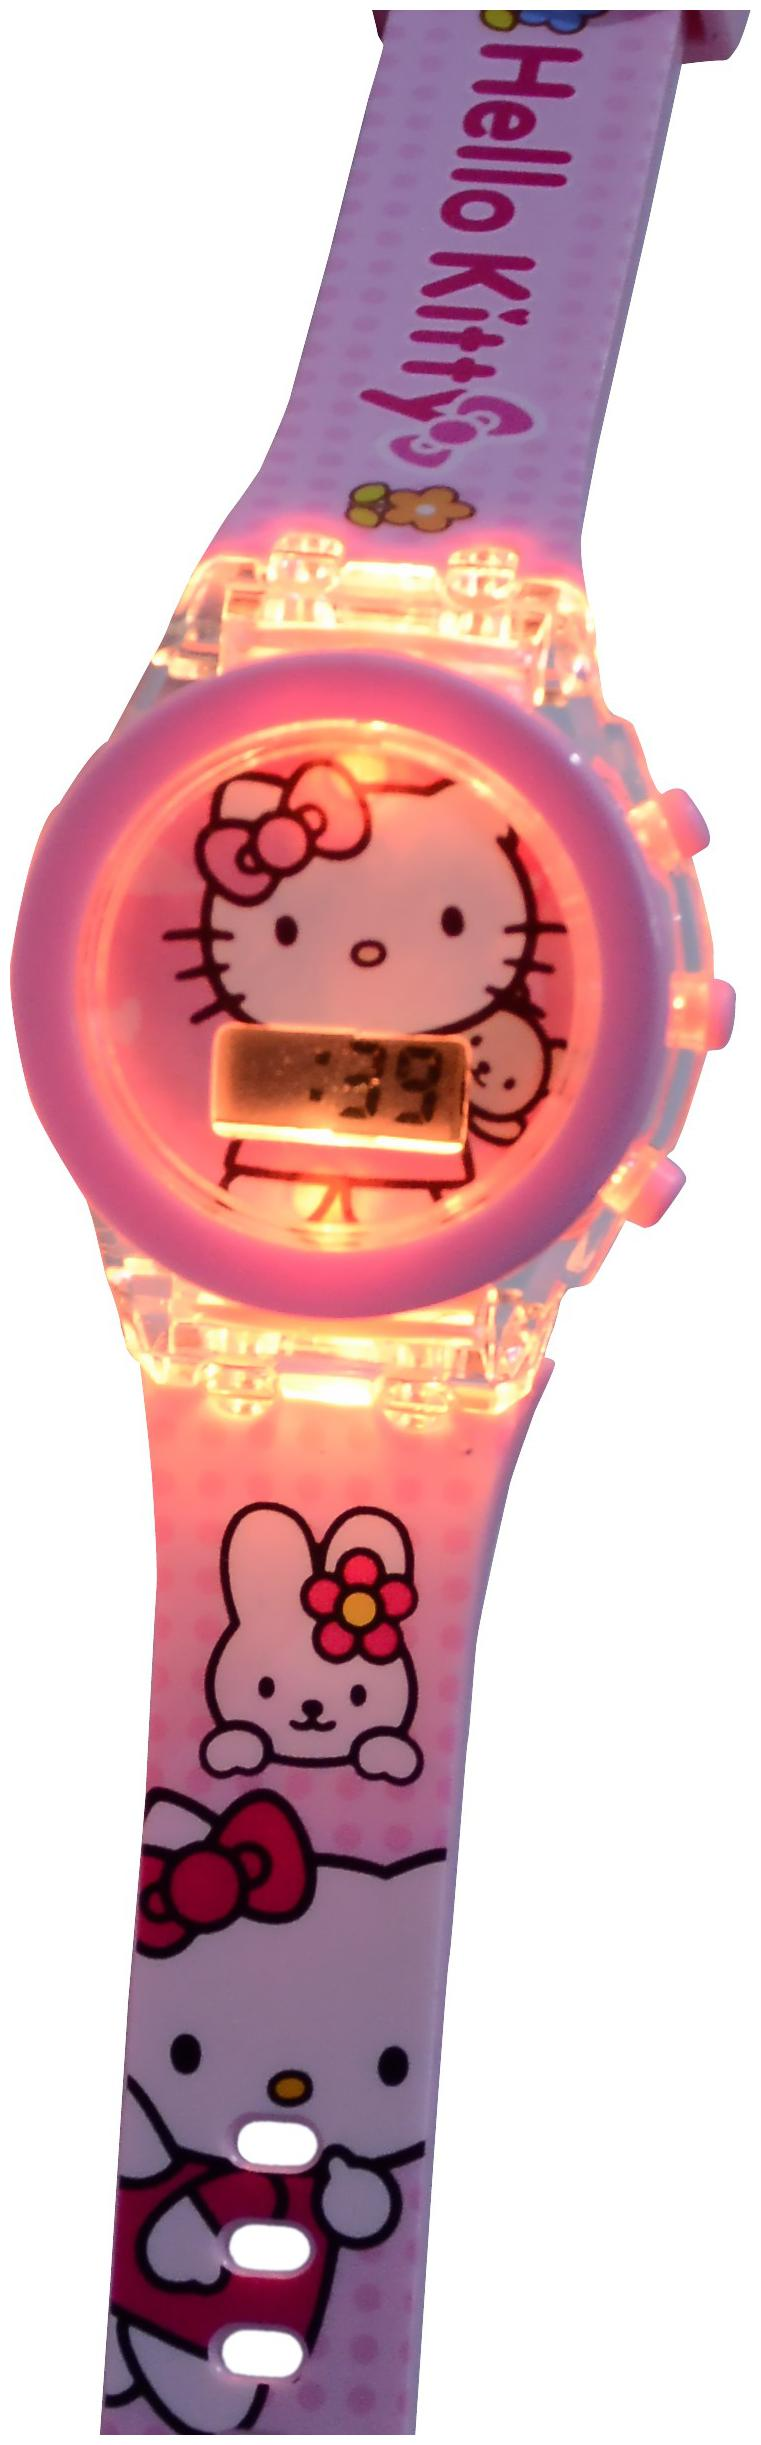 Sandbox Party Hello Kitty Glowing LED Watch  Pack of 1